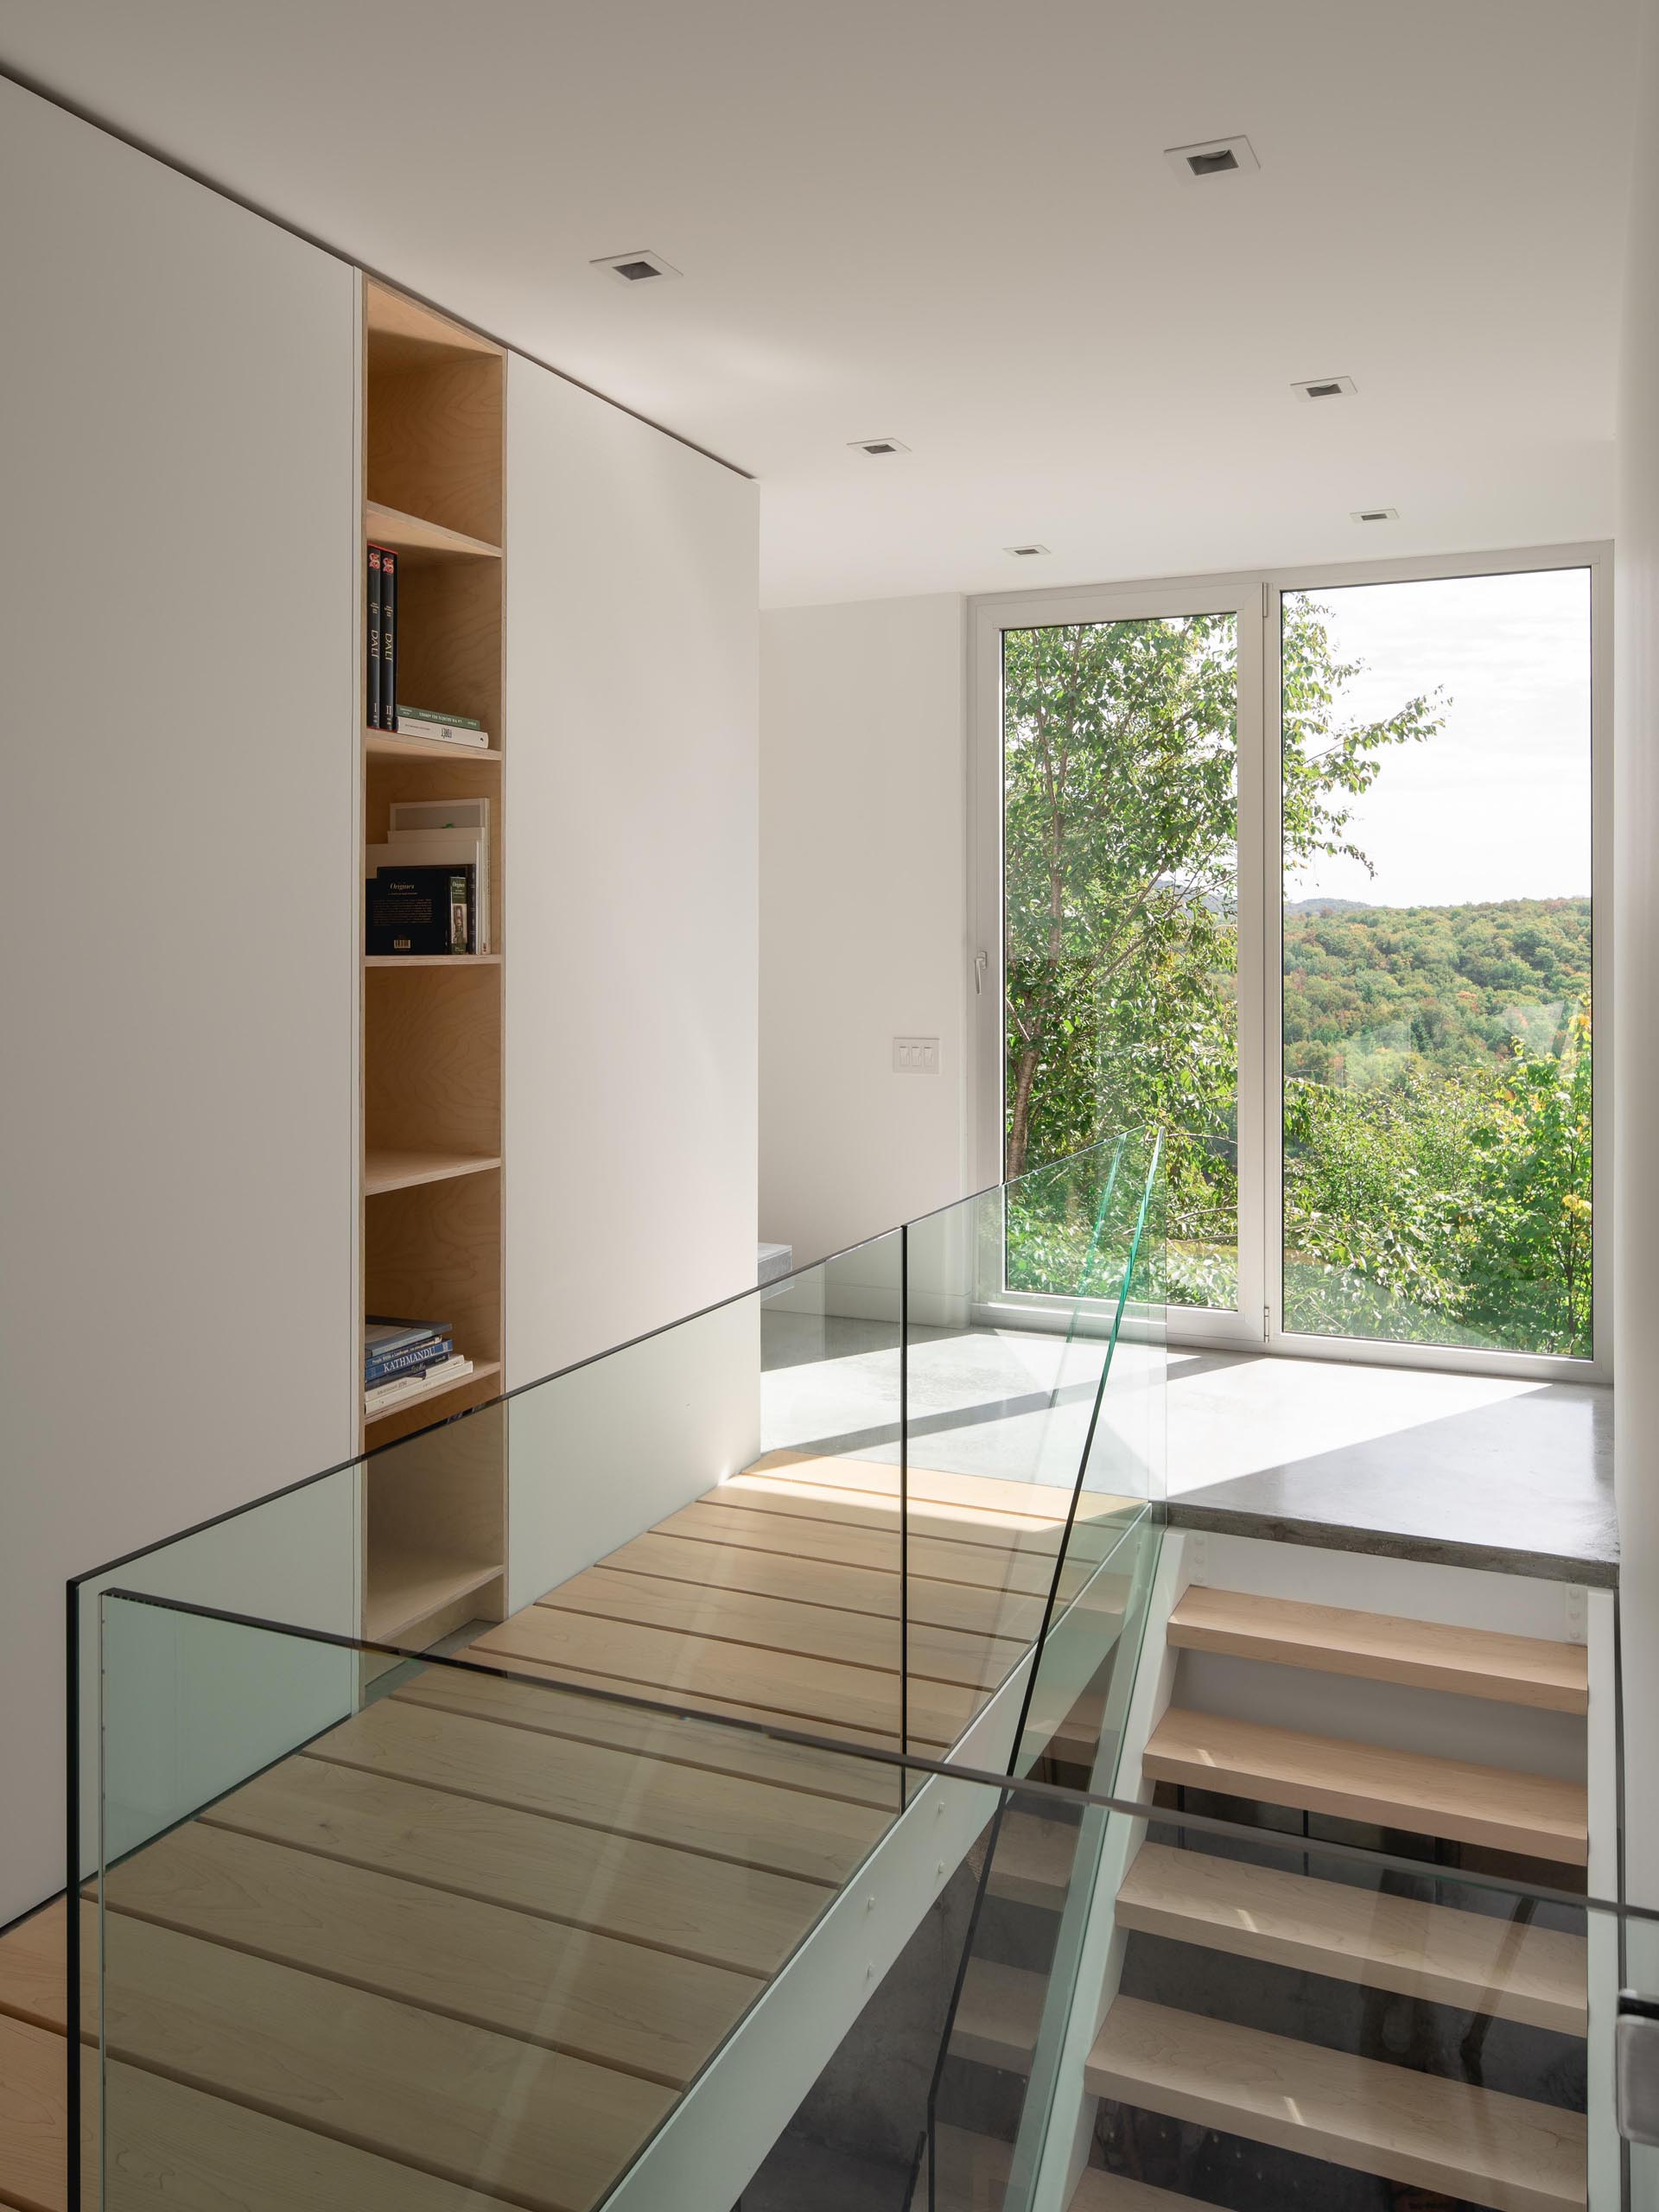 A modern home interior with wood stairs and glass handrails.